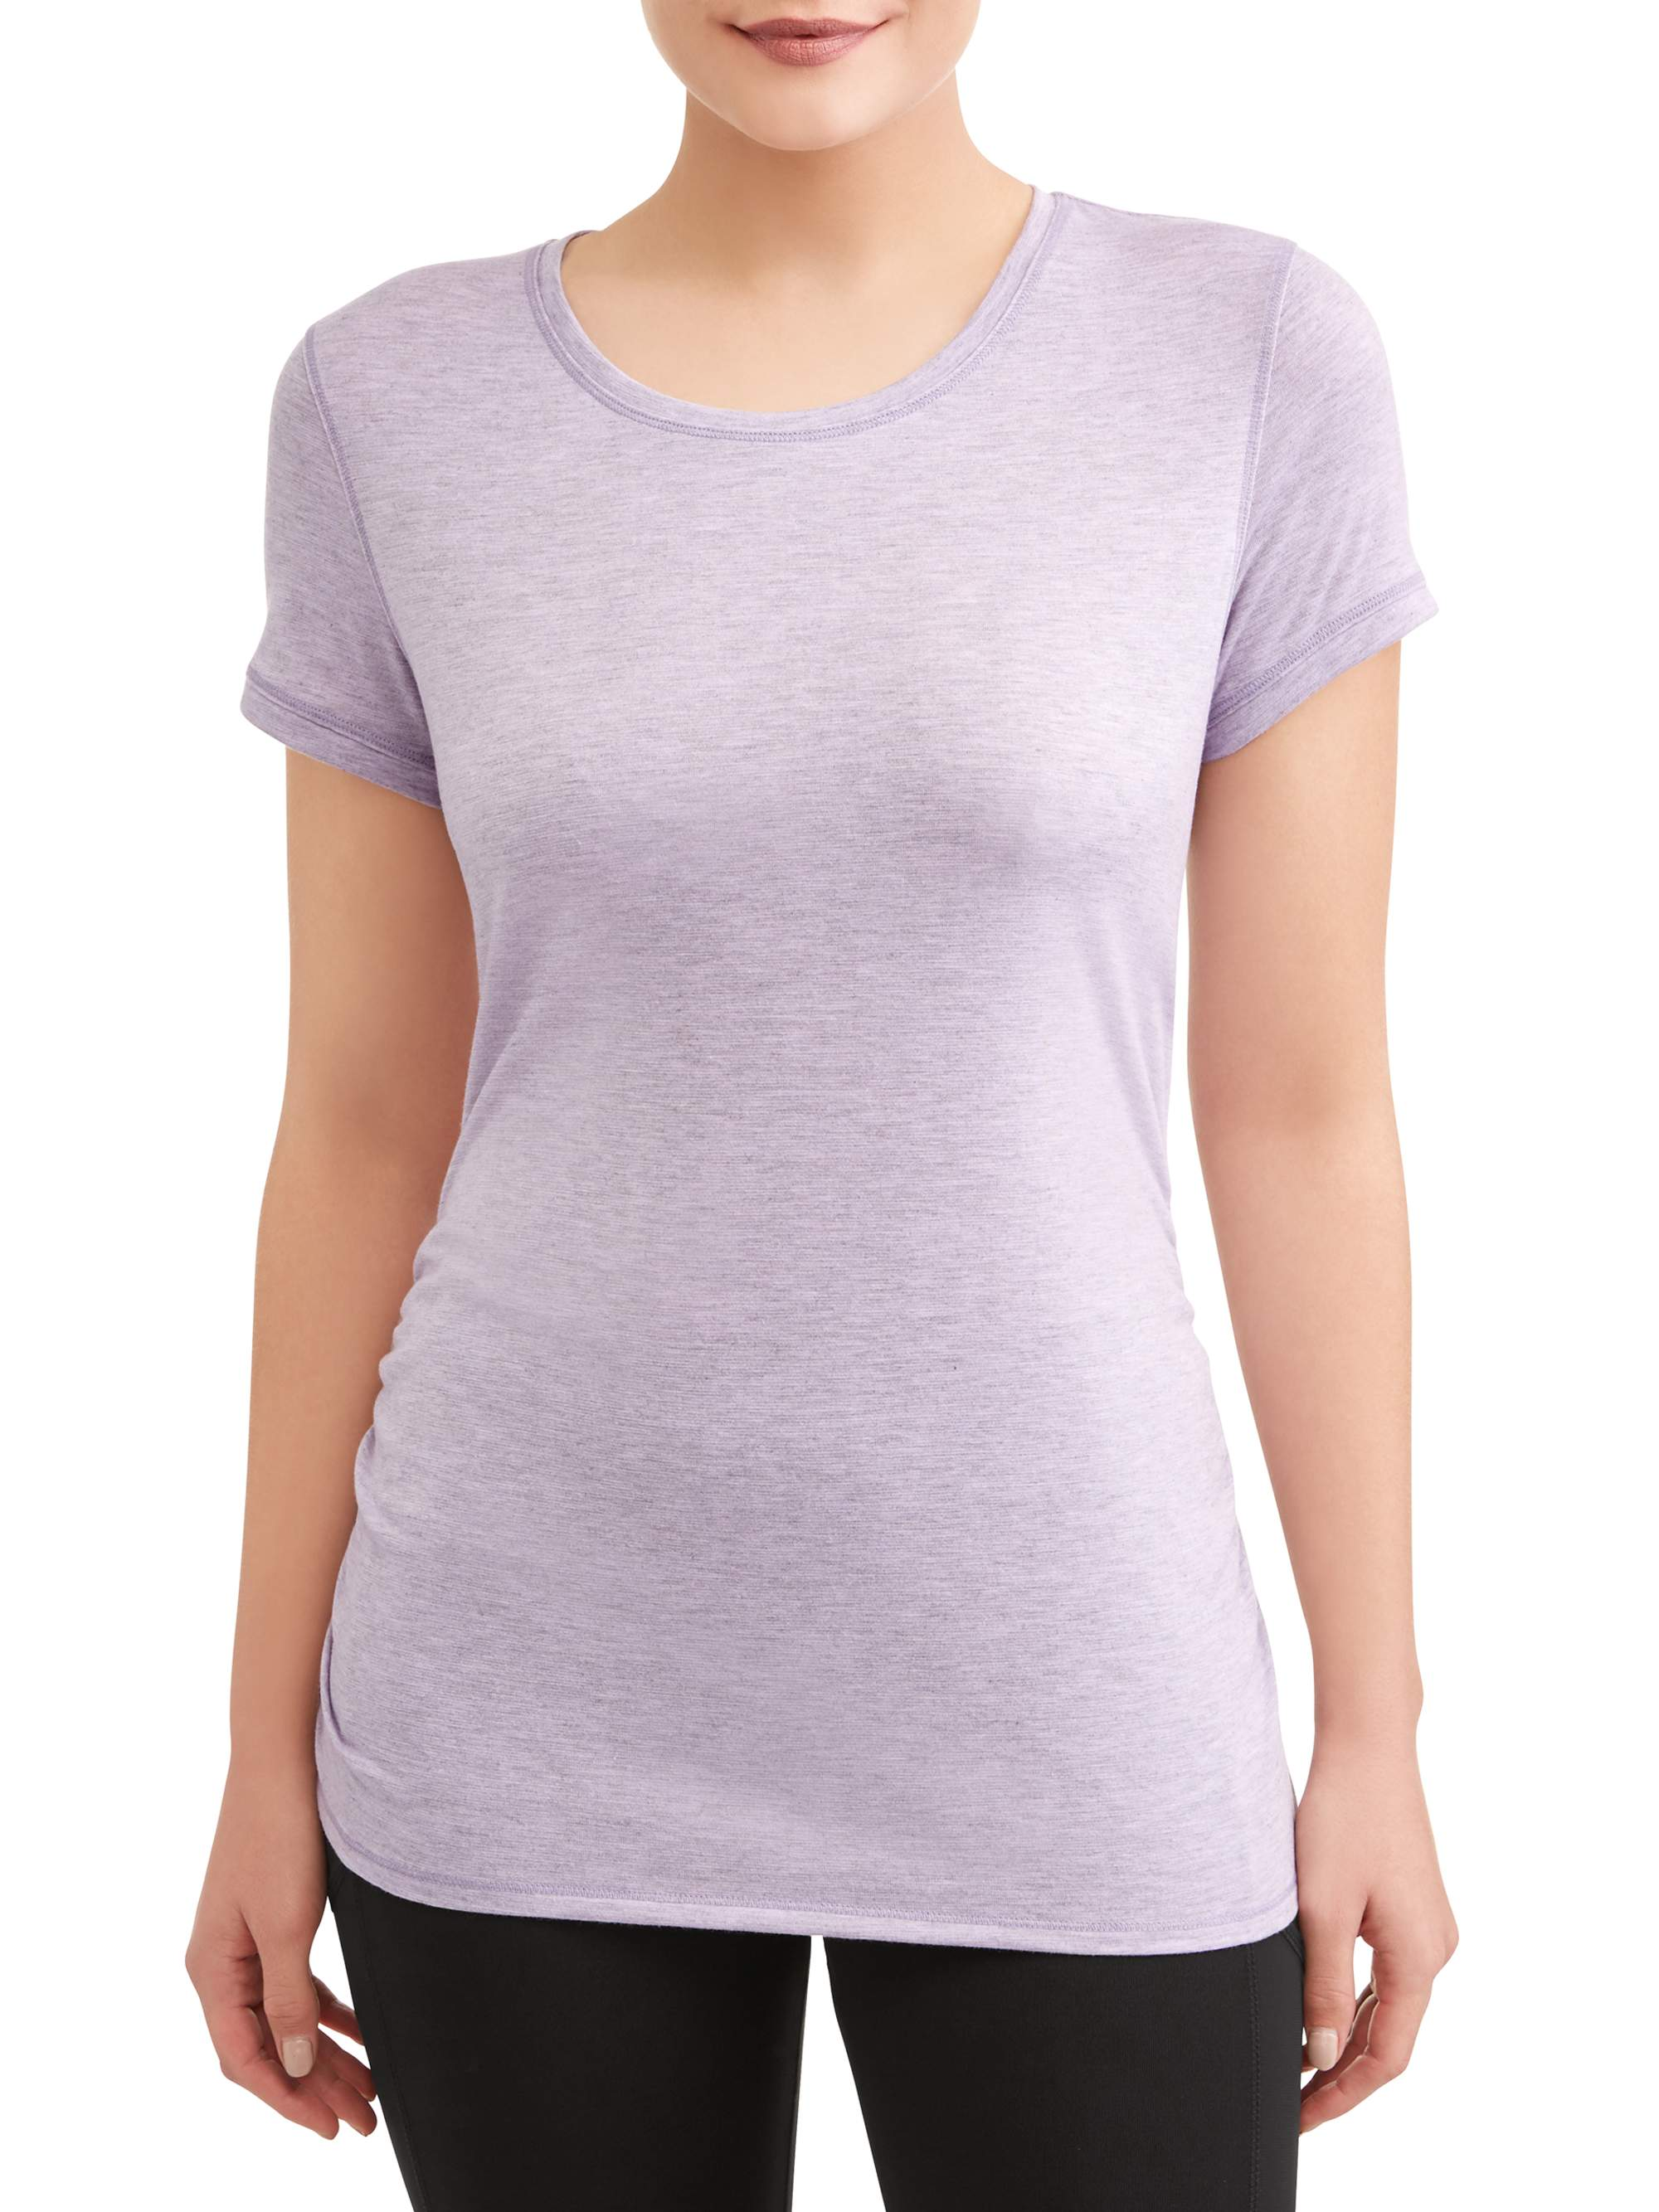 Athletic Works Ruched Ss Tee